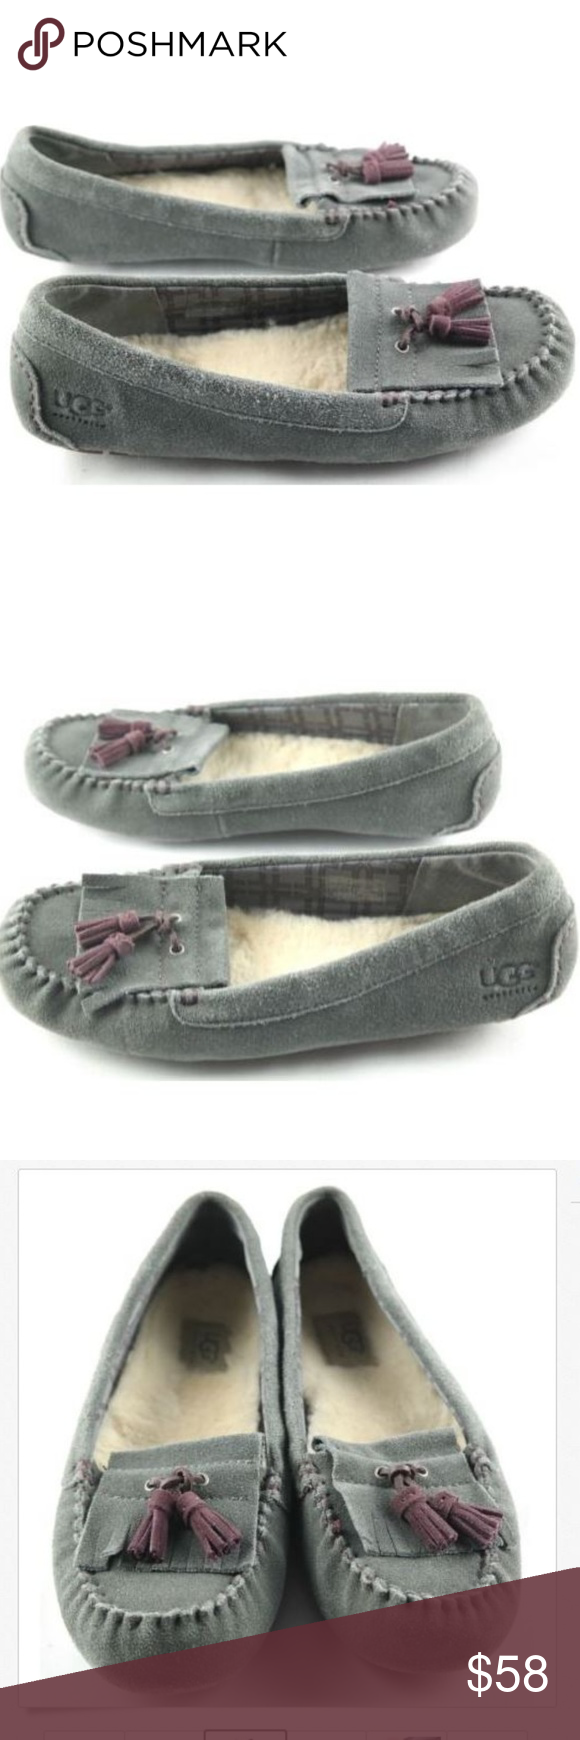 fef11761152 UGG Australia Lizzy Moccasin Slippers UGG Australia Lizzy Slipper Womens  Size 9 Gray Leather Slip On Tassel Moccasin Shoes show sign of regular use.